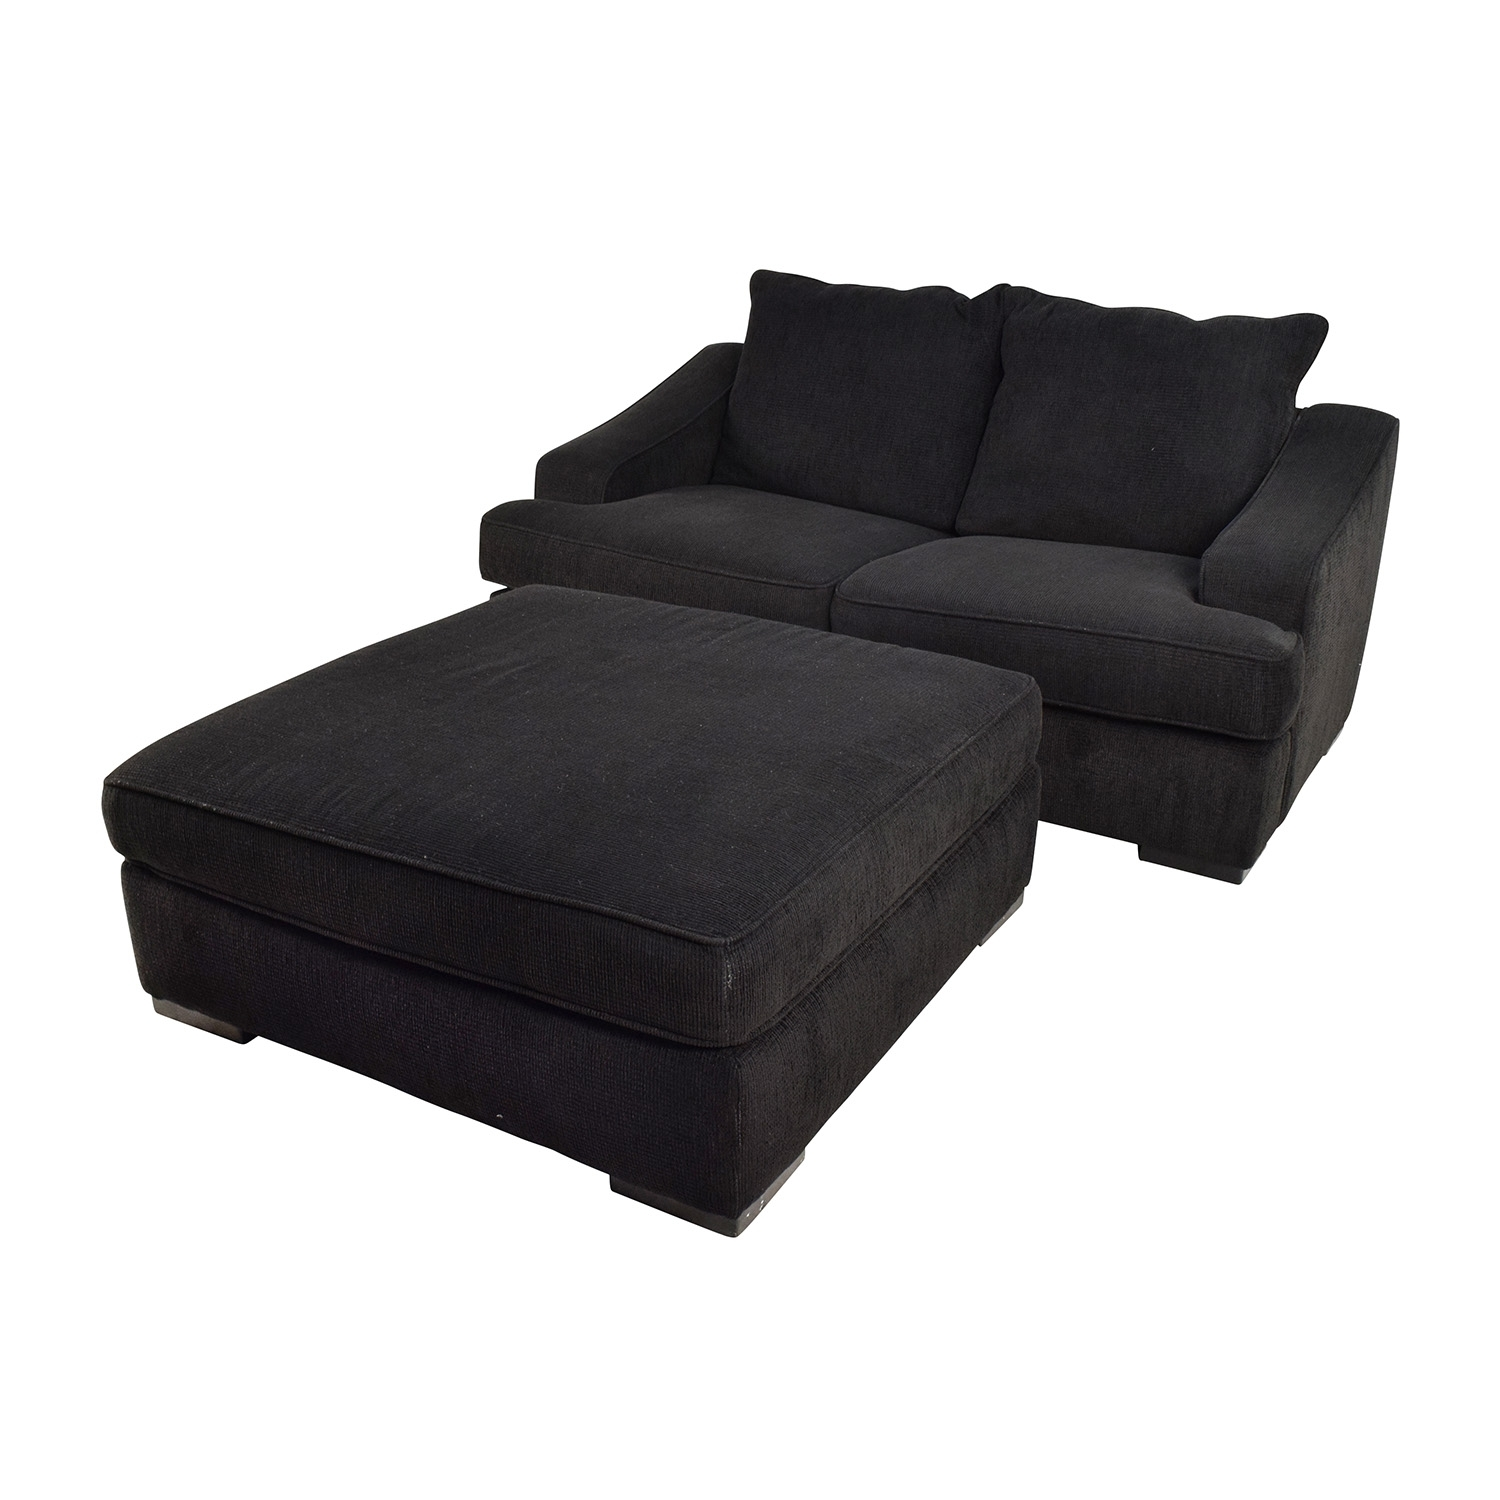 67% Off - Black Cloth Loveseat And Matching Oversized Ottoman / Sofas intended for Loveseats With Ottoman (Image 1 of 15)